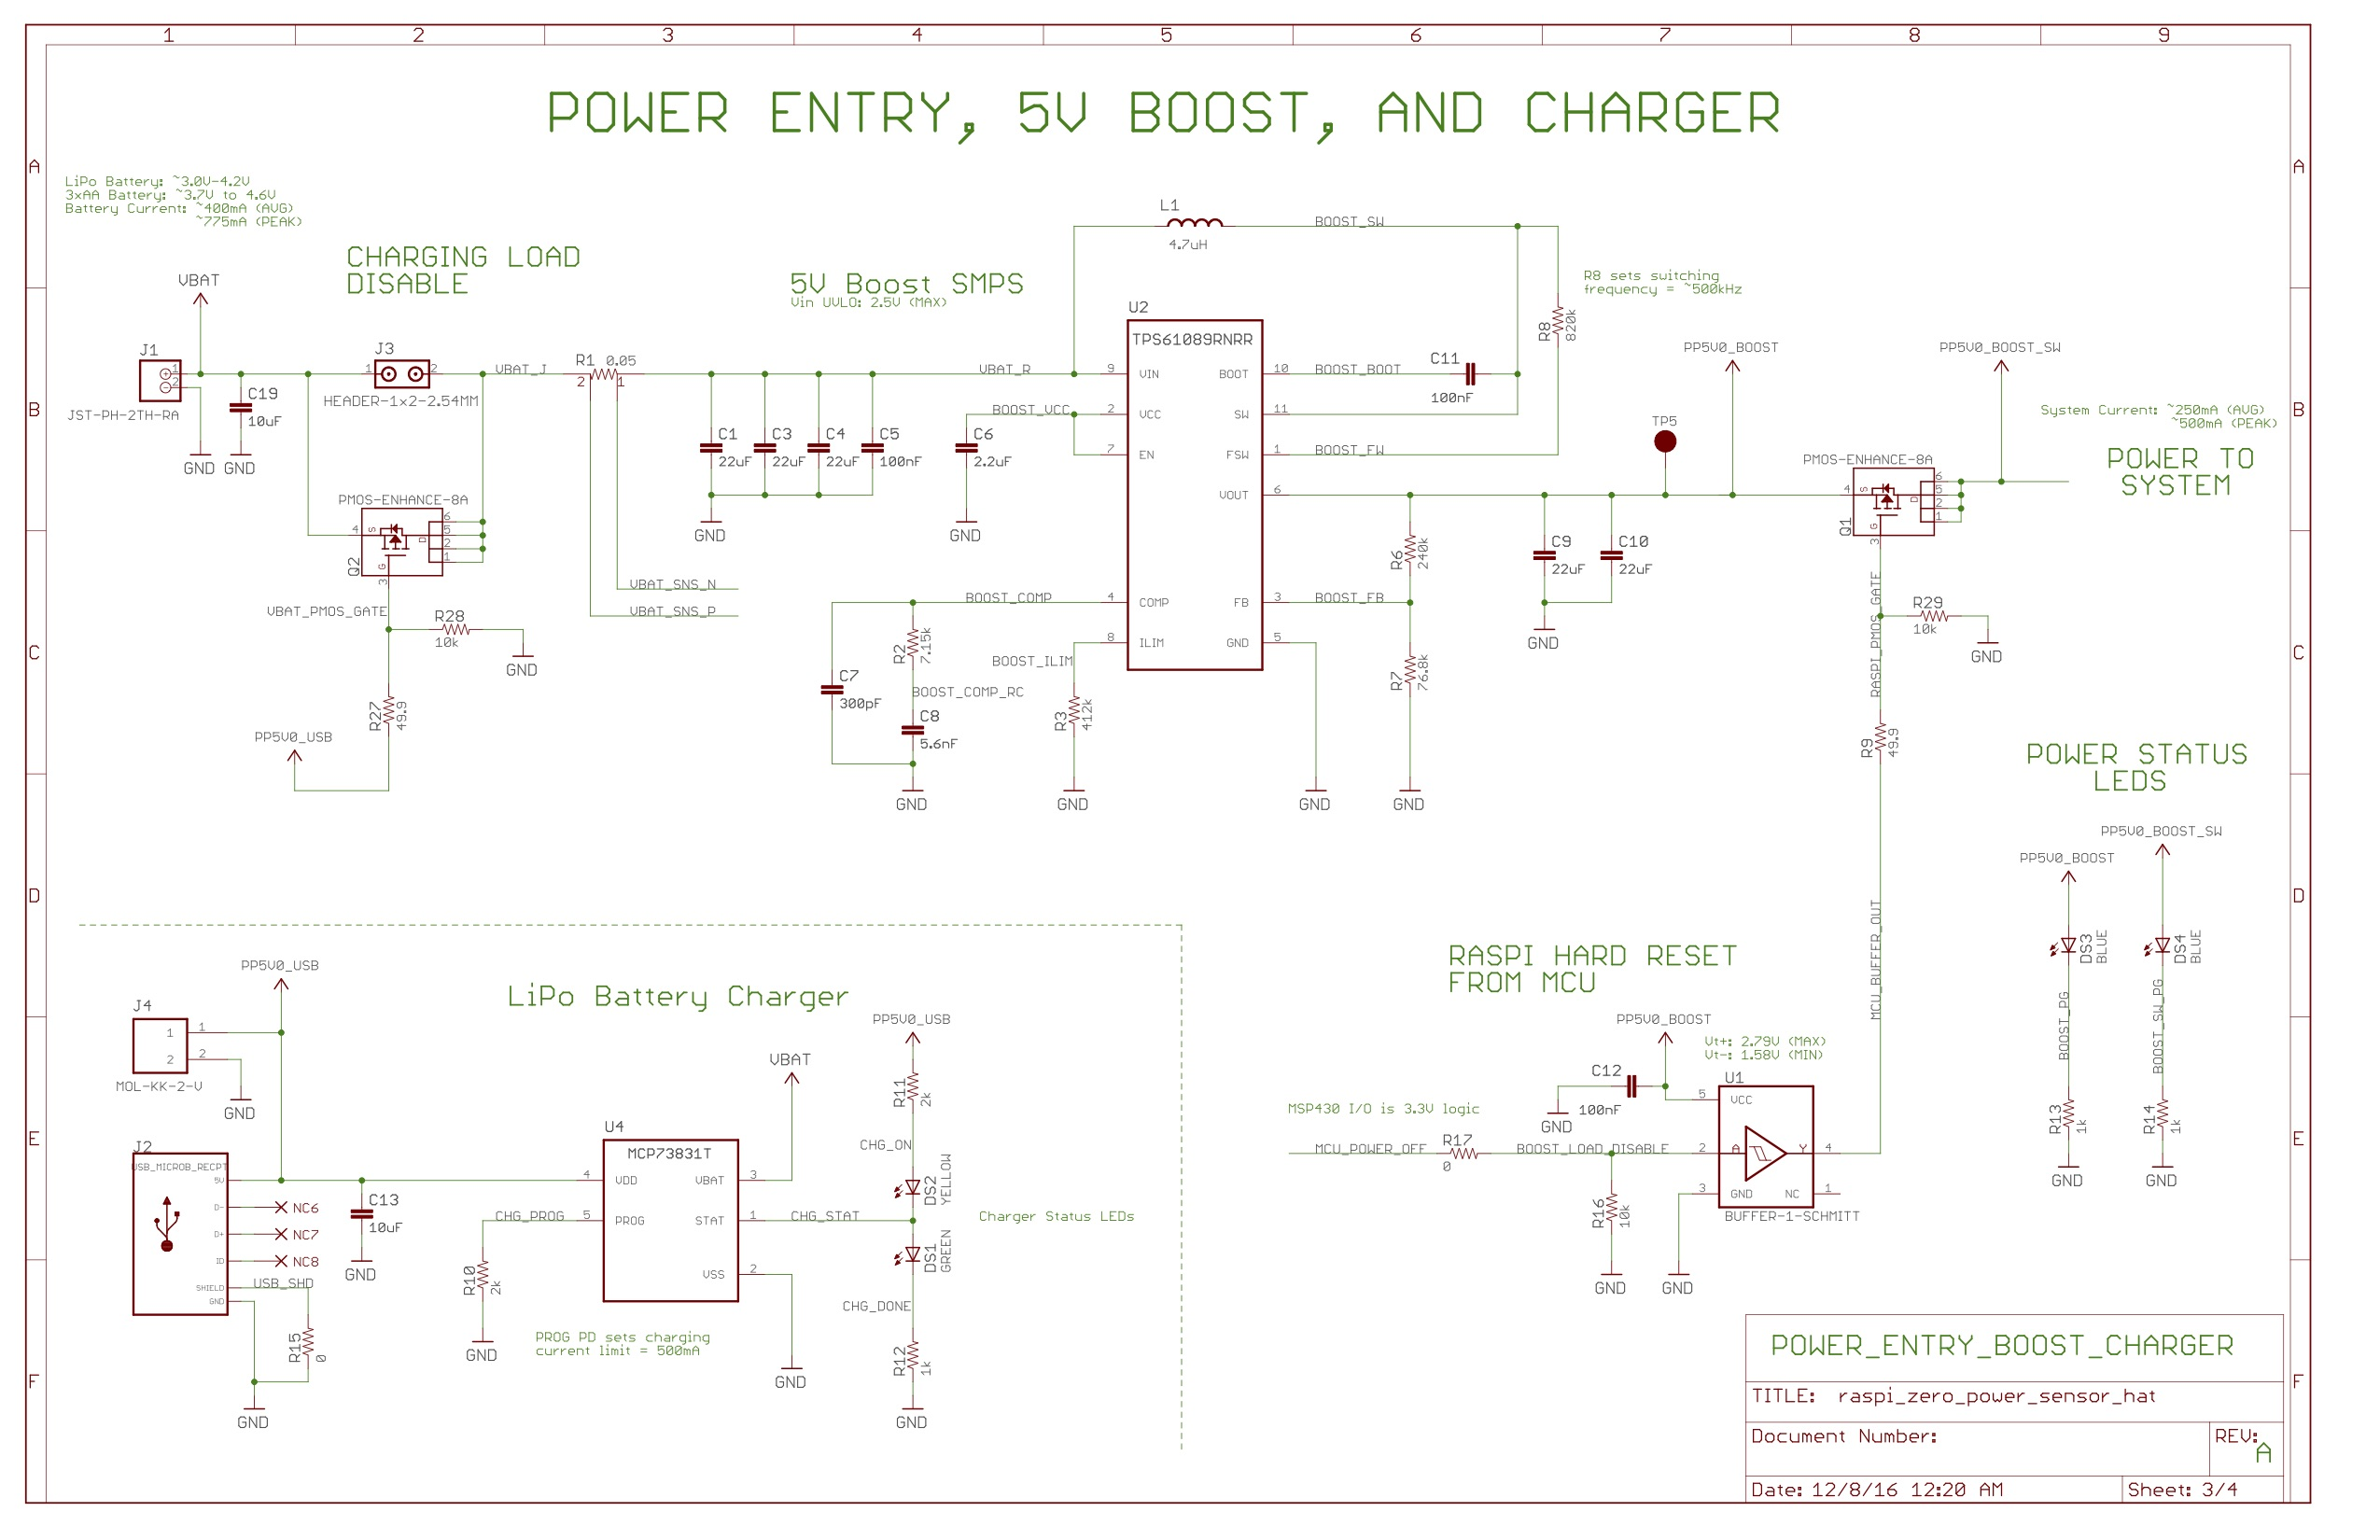 EDGE Raspberry Pi Schematics on